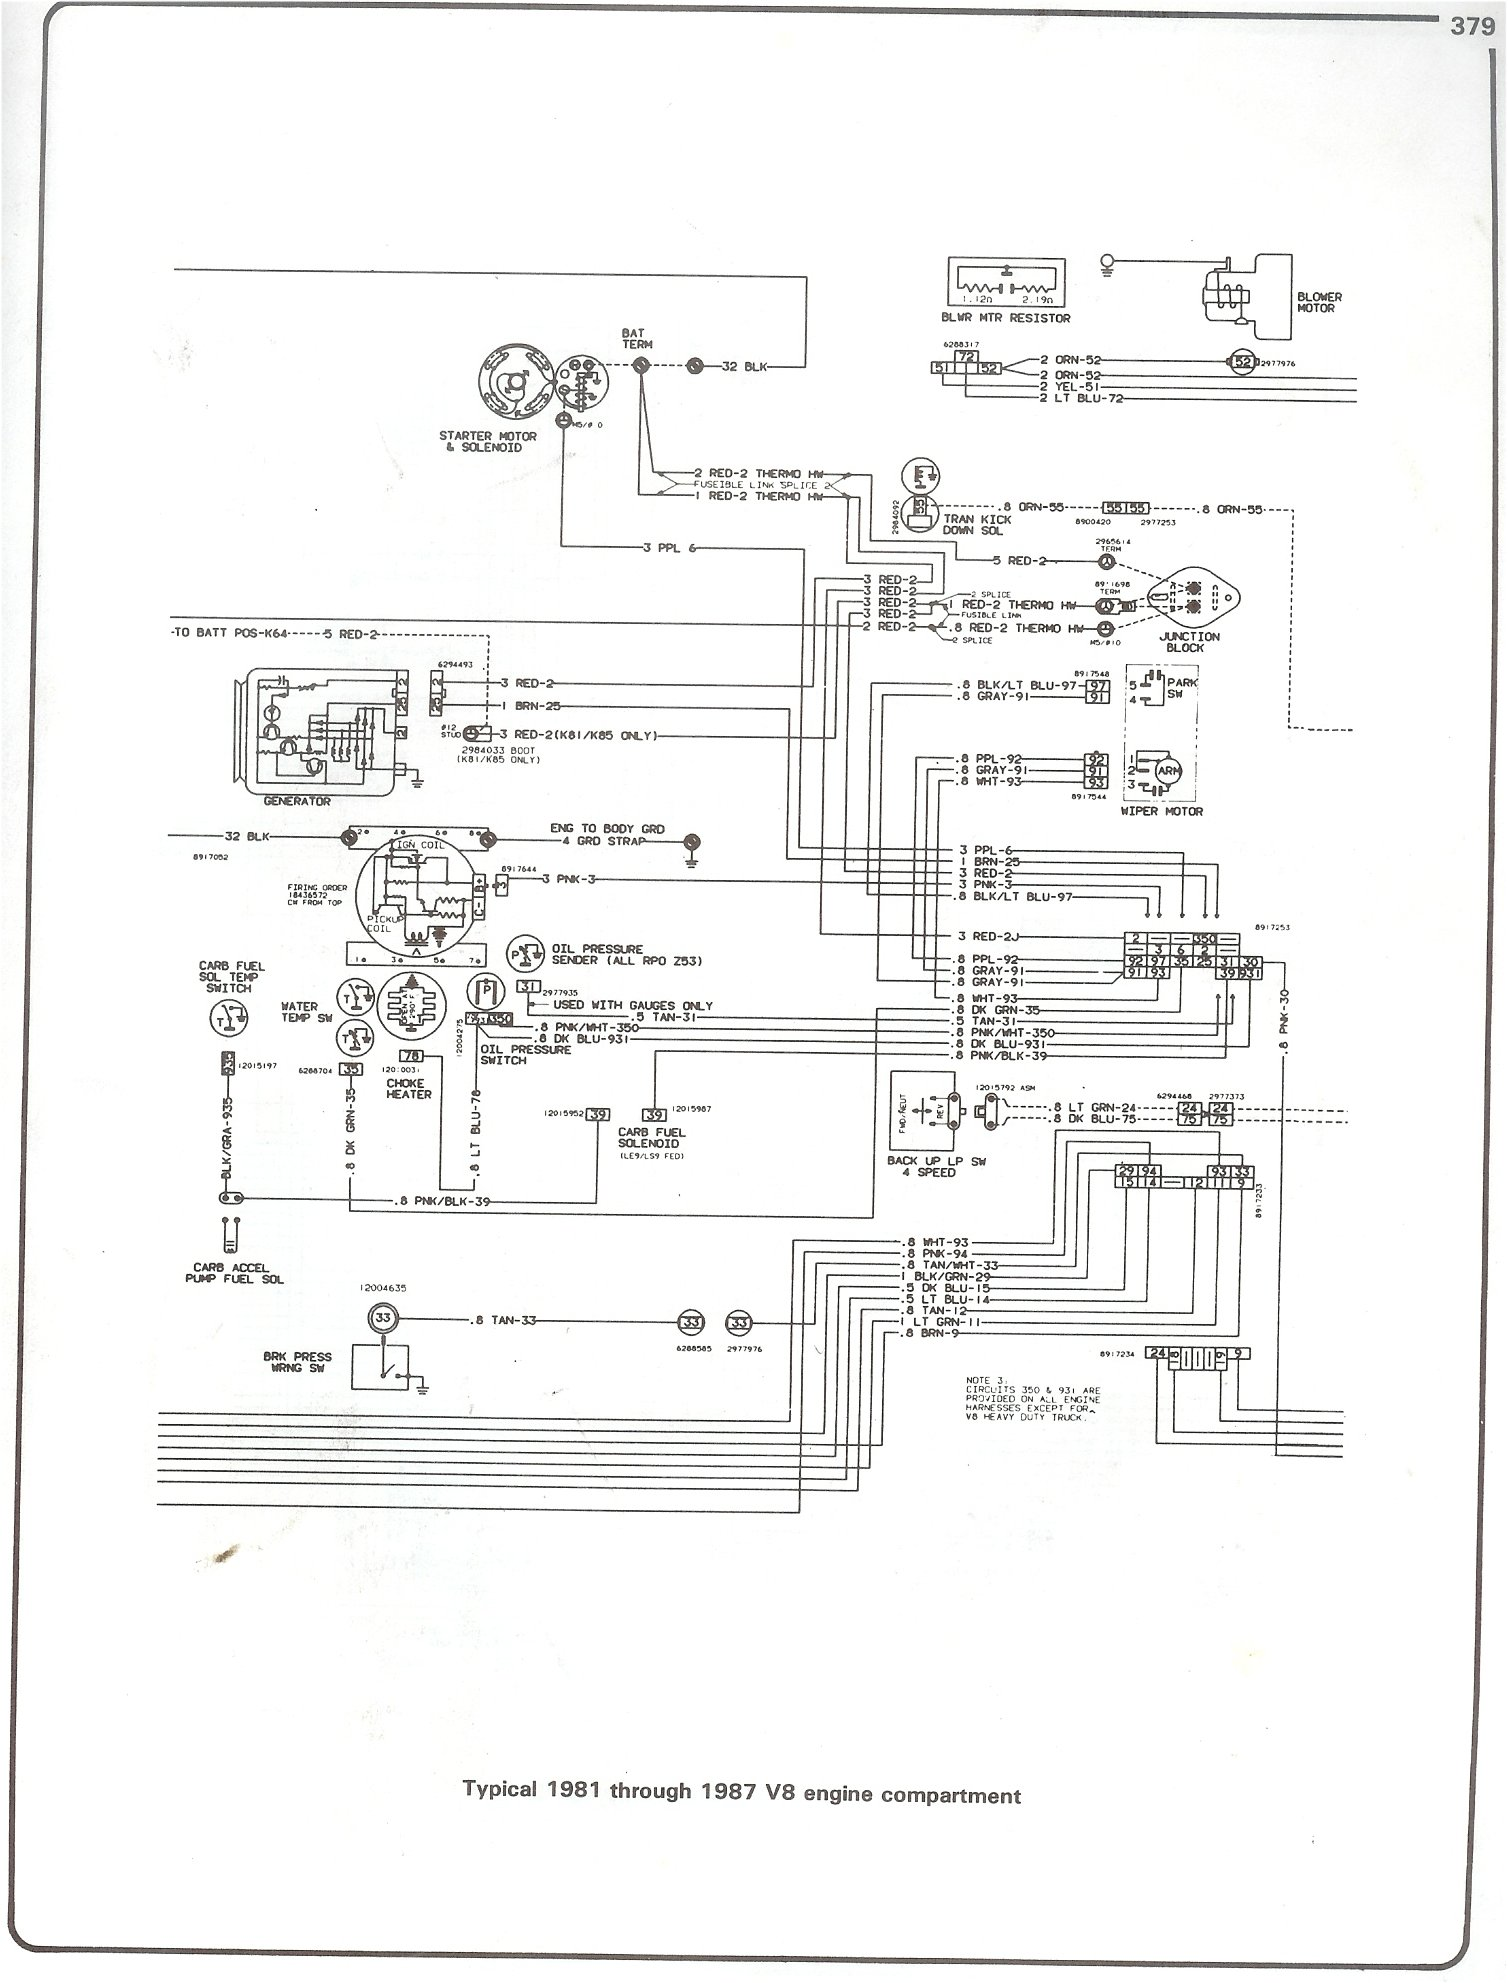 76 Camaro Fuse Box Diagram Worksheet And Wiring 97 Library Rh 17 Codingcommunity De 1998 88